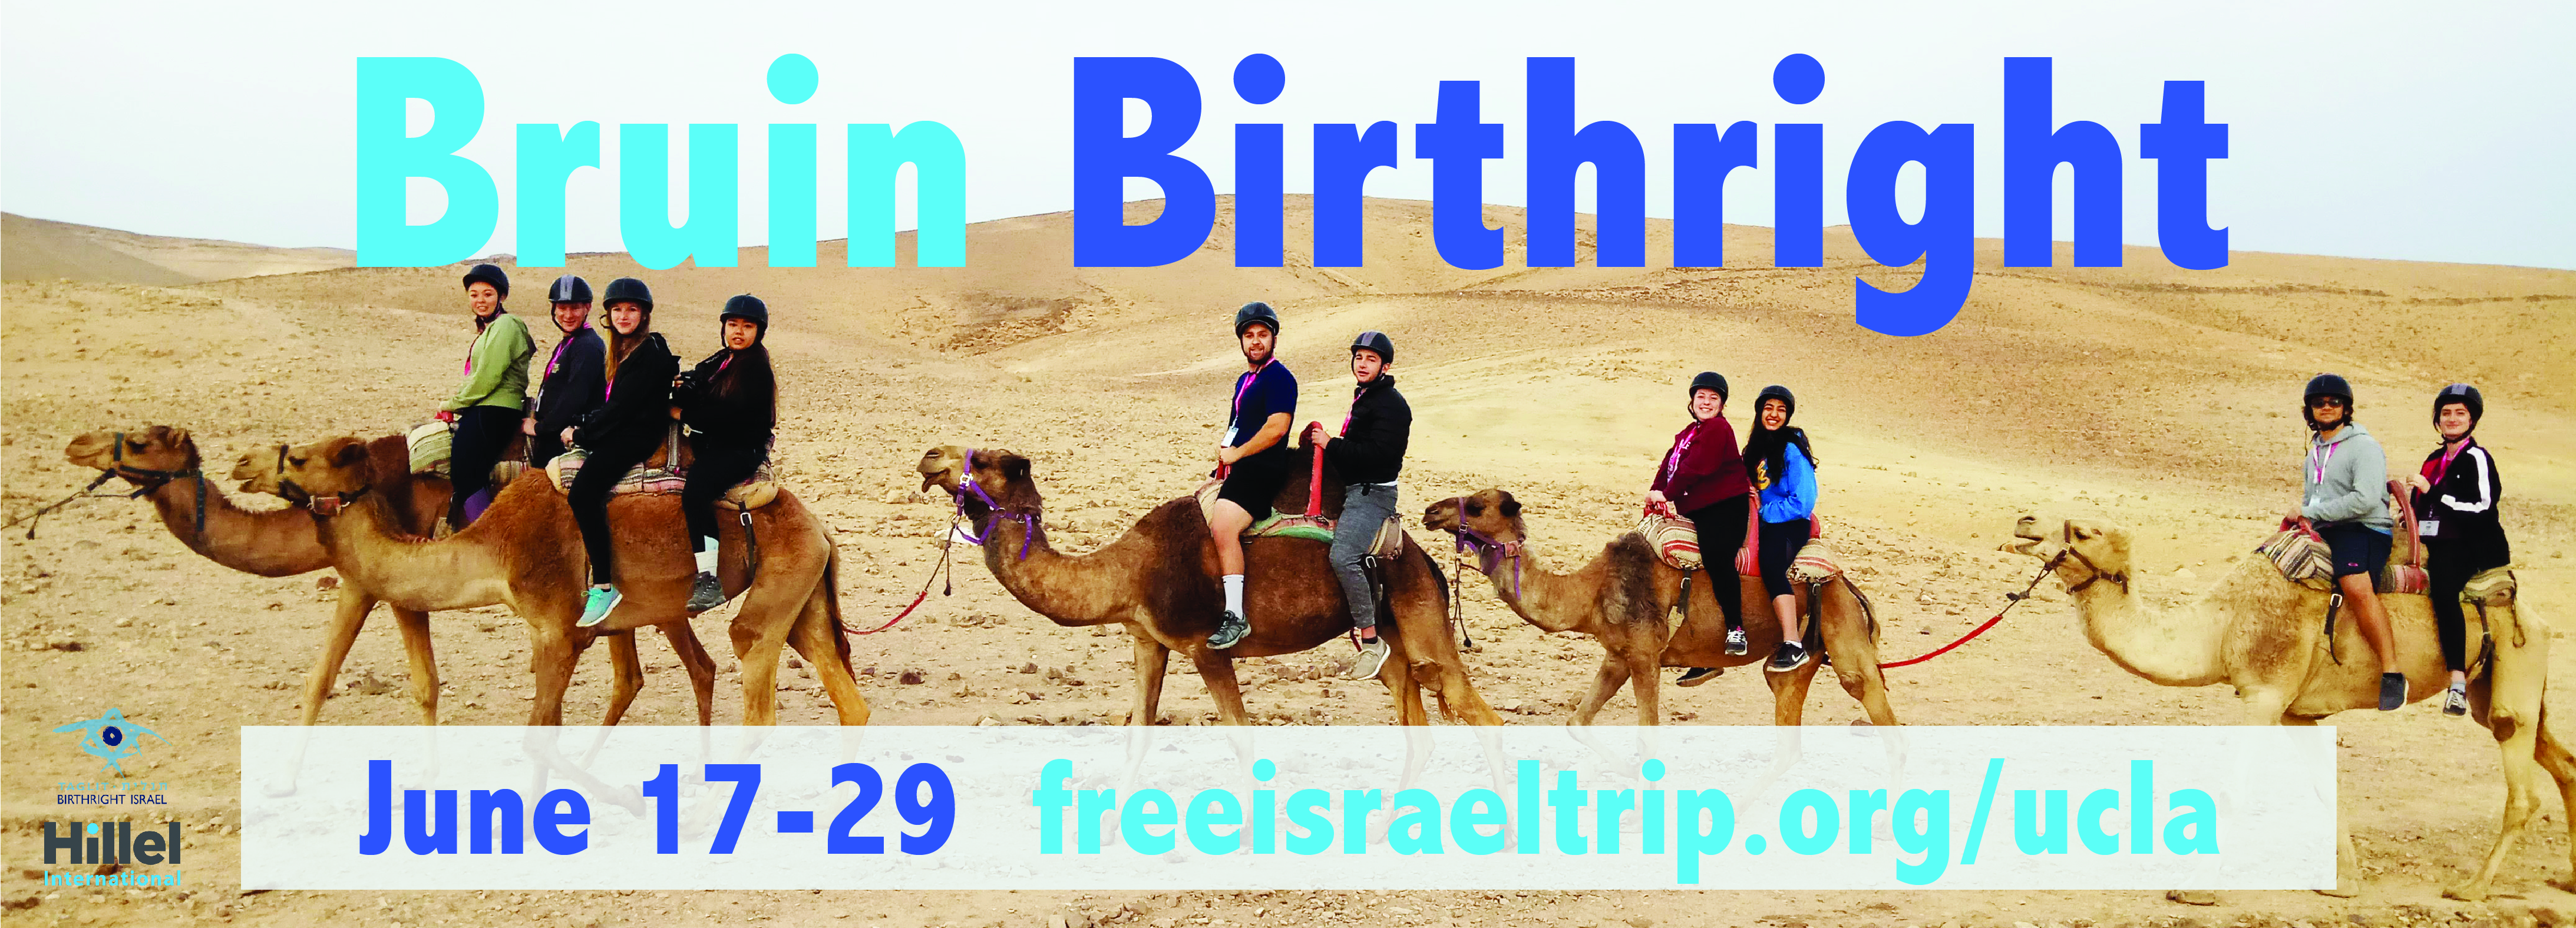 Bruin_birthright_cover_photo-01.jpg